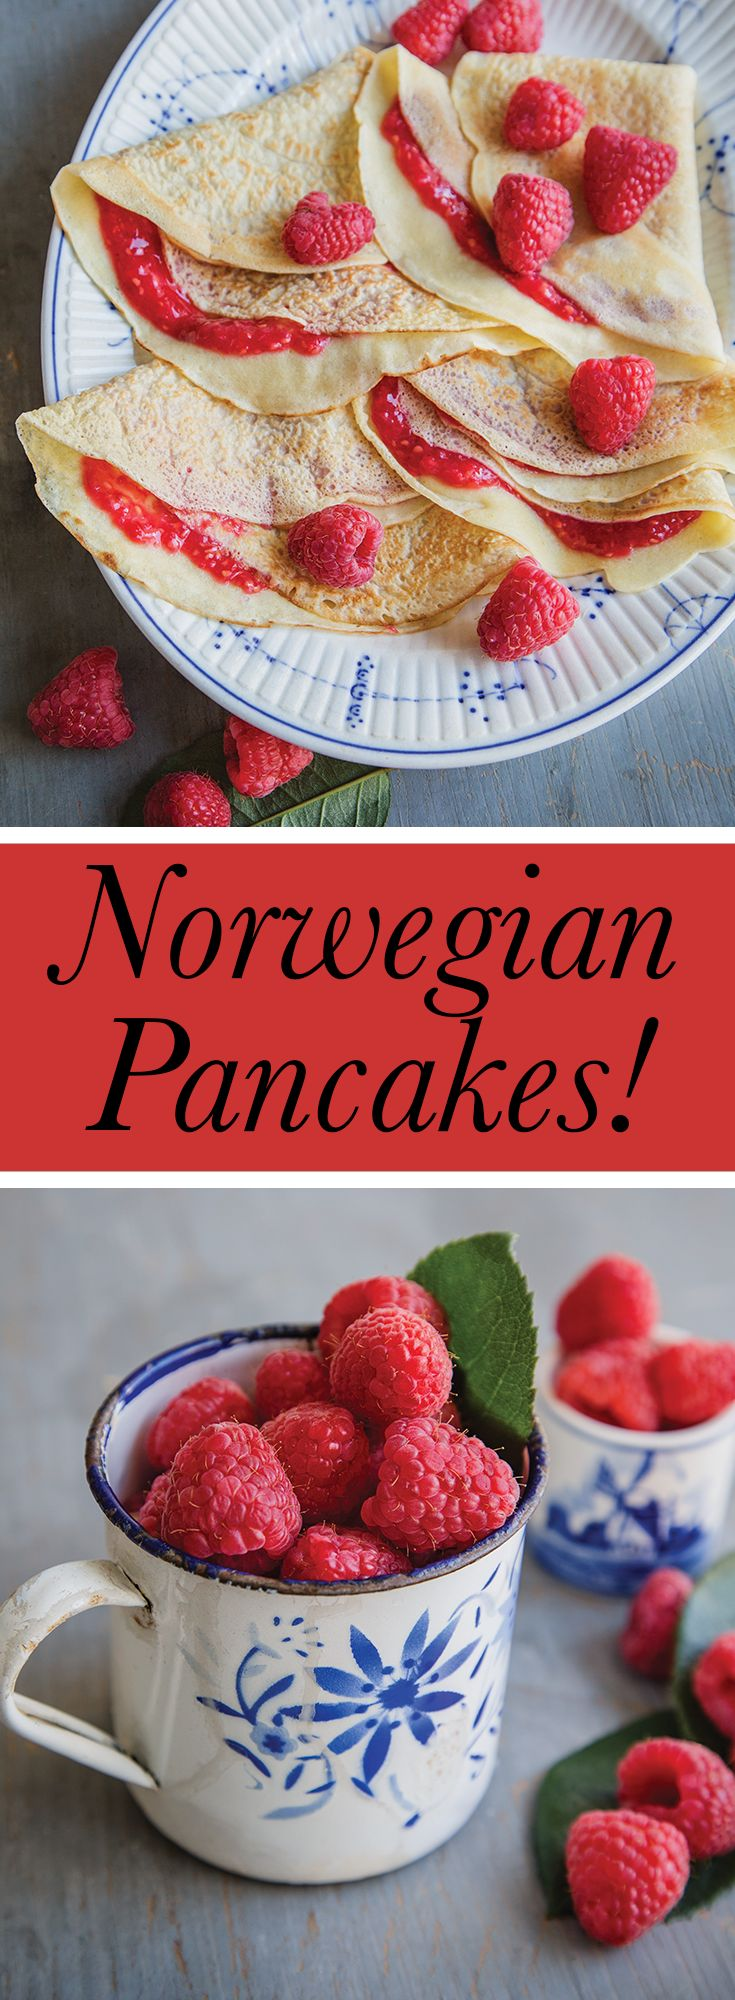 A Norwegian pancake recipe straight from Sweet Paul's grandmother's recipe book!